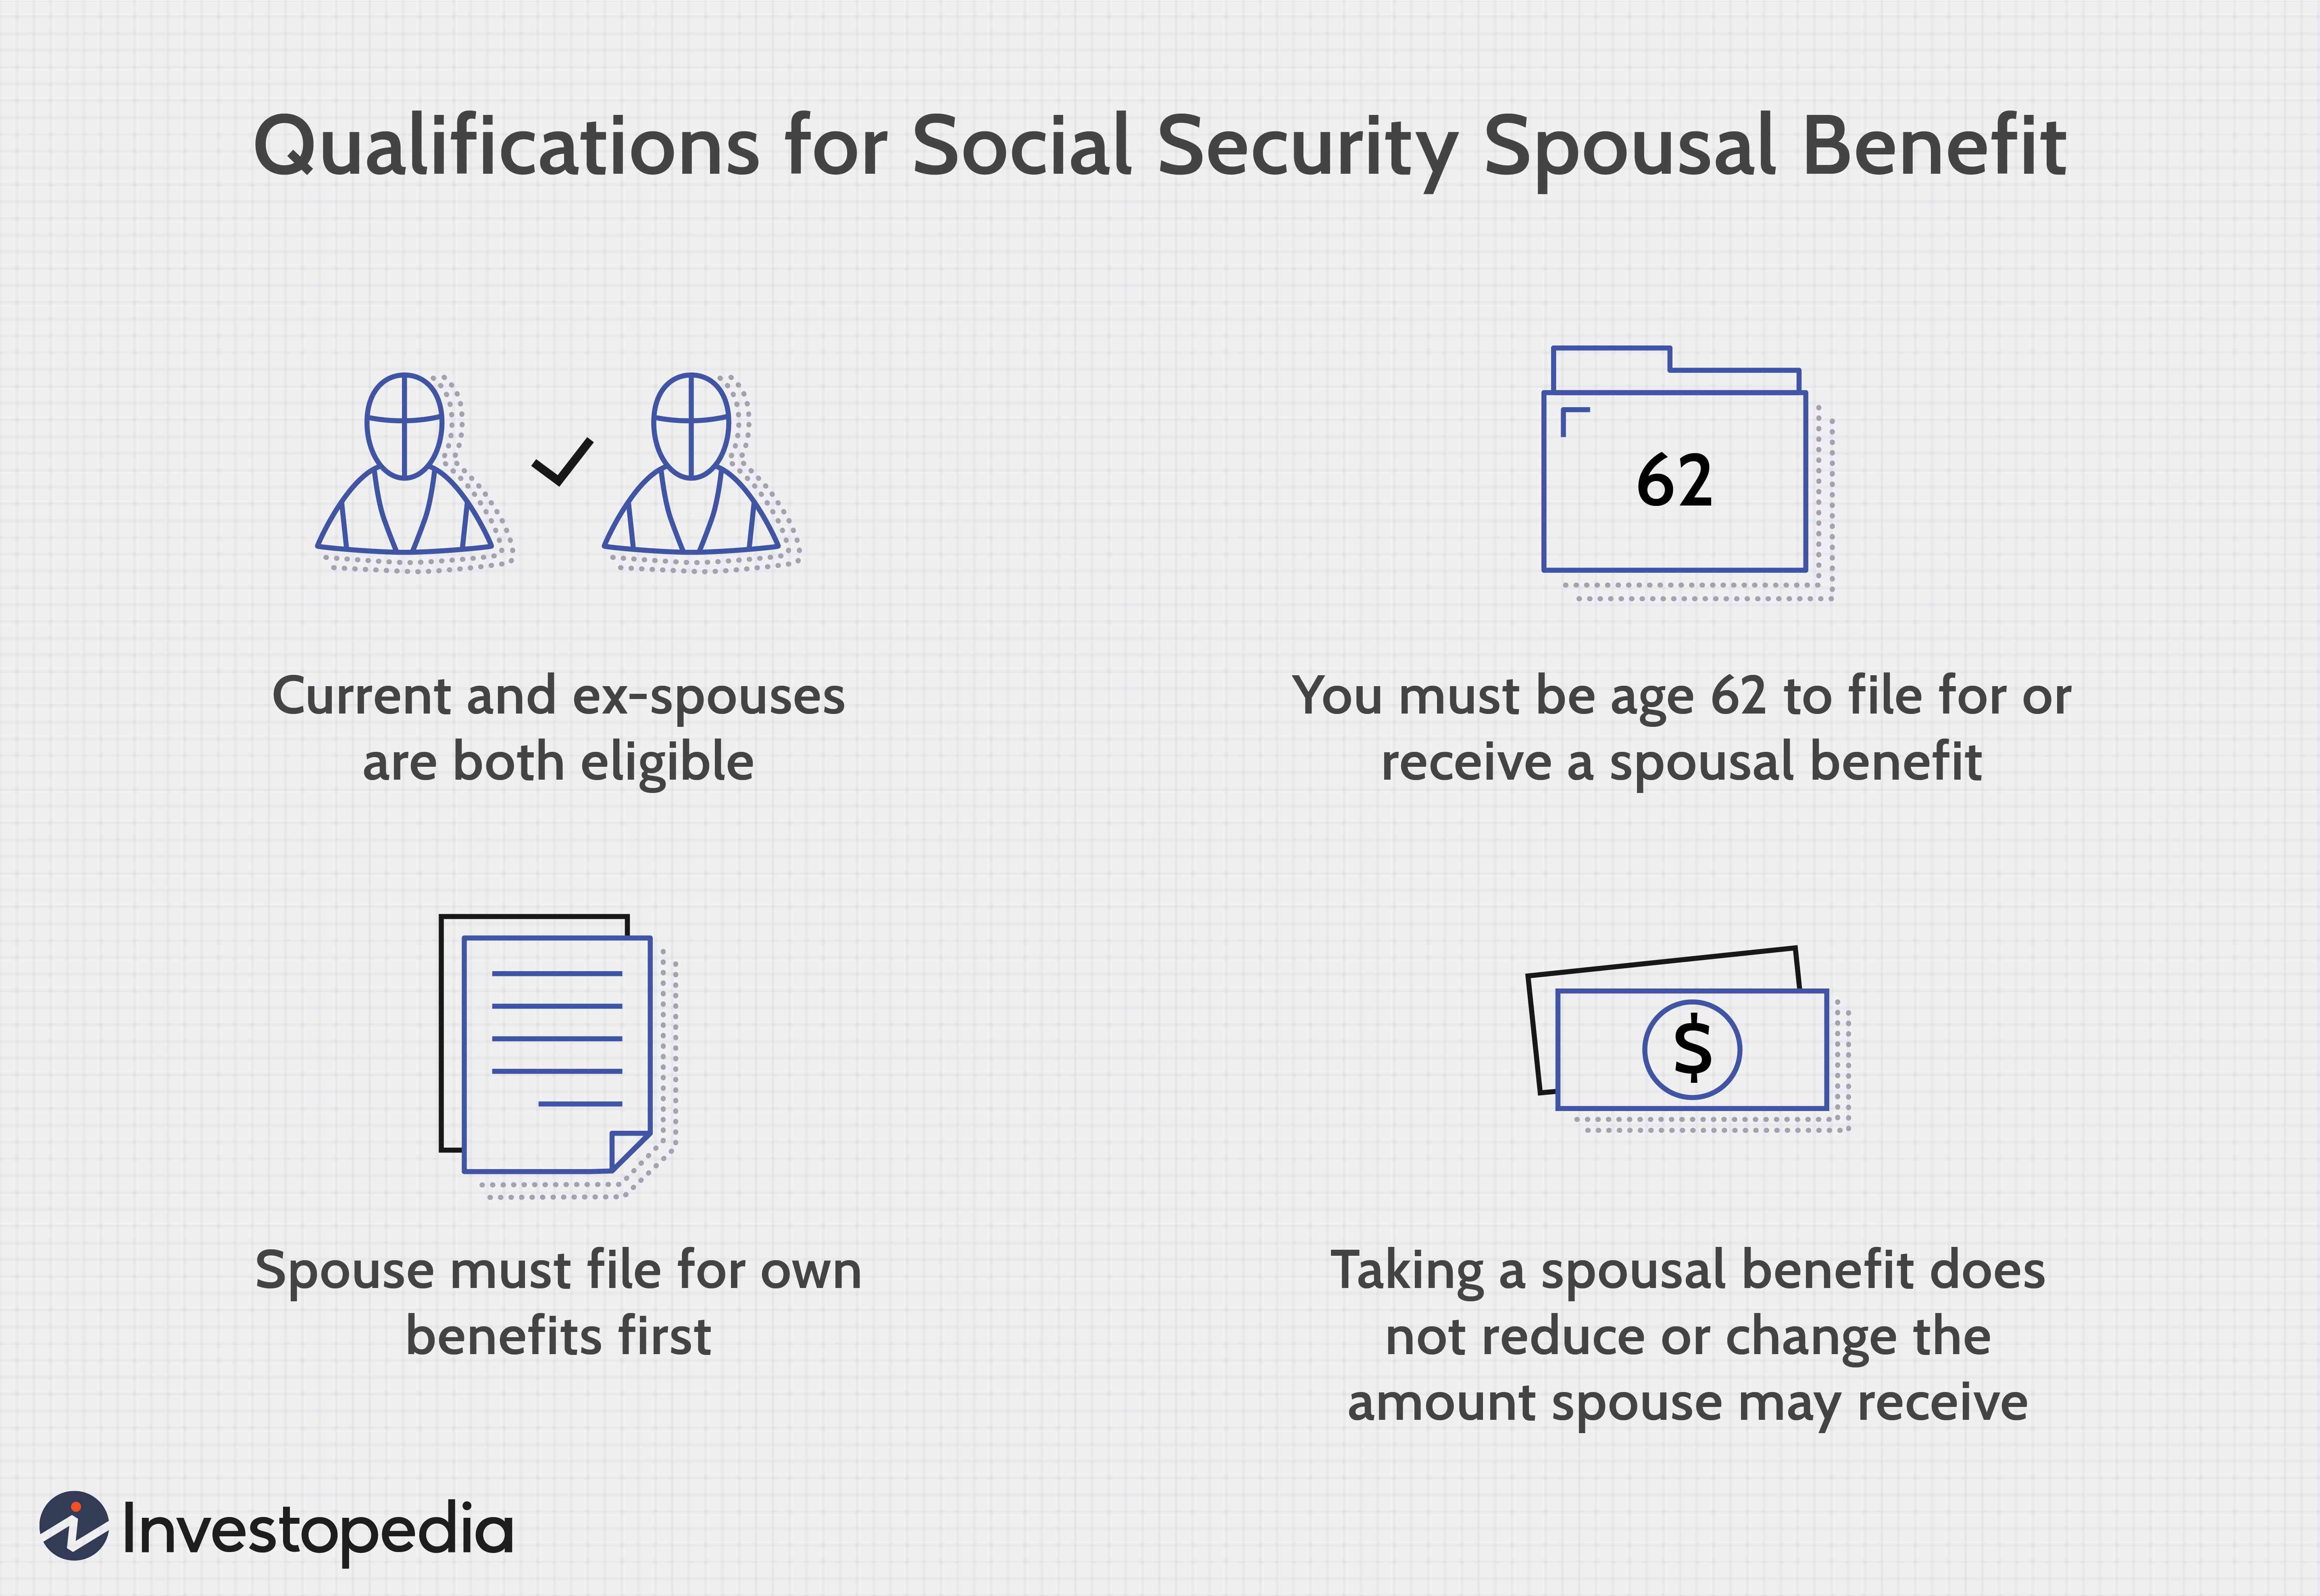 dotdash Final How Are Spousal Benefits Calculated for Social Security May 2020 01 29ec05cc8e7241ec95054d75a3d998aa - Social Security Restricted Application Changes